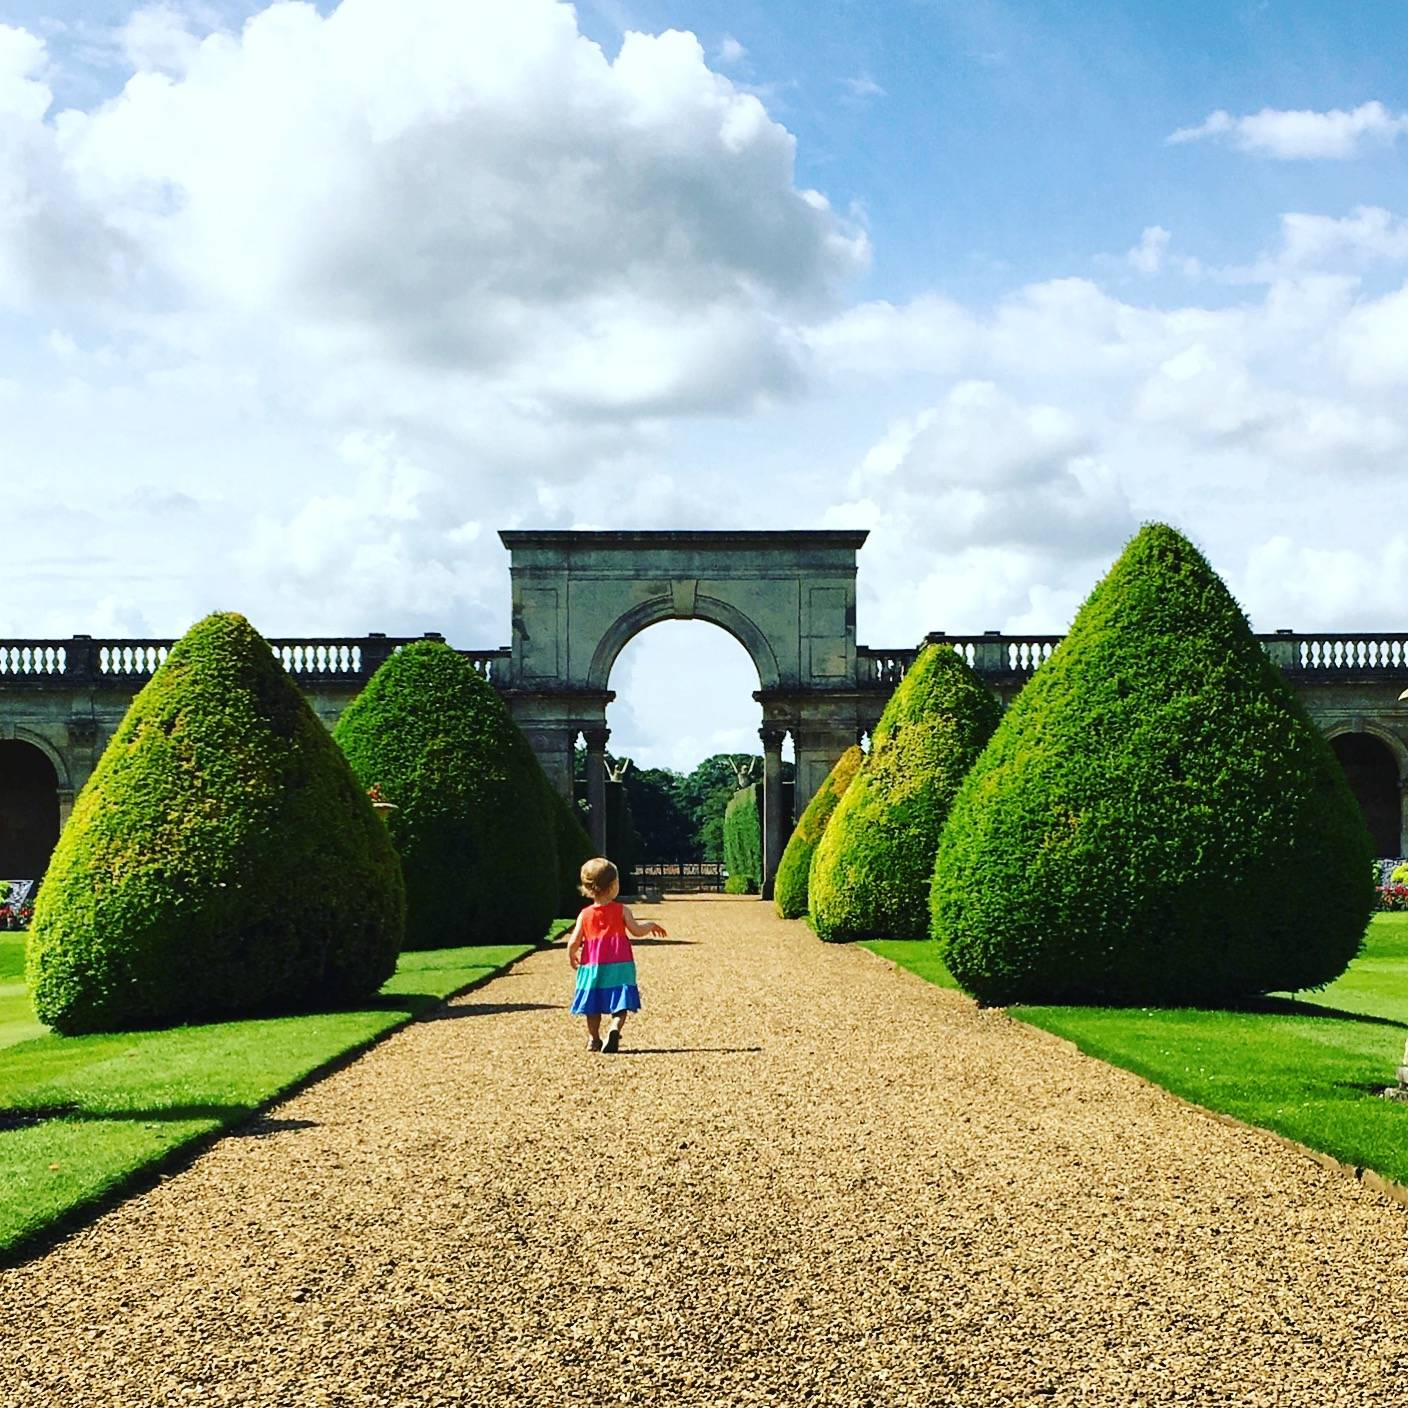 Ava running along a gravel path with greenery either side towards a beautiful stone archway